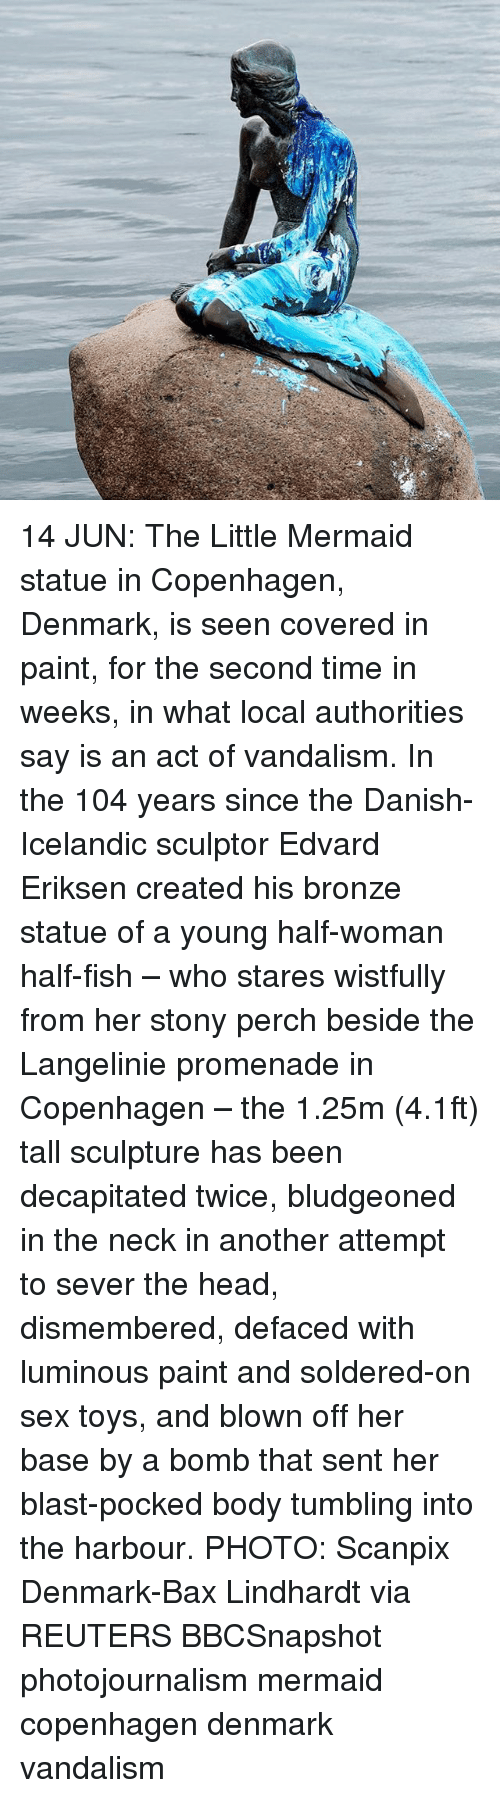 Head, Memes, and Sex: 14 JUN: The Little Mermaid statue in Copenhagen, Denmark, is seen covered in paint, for the second time in weeks, in what local authorities say is an act of vandalism. In the 104 years since the Danish-Icelandic sculptor Edvard Eriksen created his bronze statue of a young half-woman half-fish – who stares wistfully from her stony perch beside the Langelinie promenade in Copenhagen – the 1.25m (4.1ft) tall sculpture has been decapitated twice, bludgeoned in the neck in another attempt to sever the head, dismembered, defaced with luminous paint and soldered-on sex toys, and blown off her base by a bomb that sent her blast-pocked body tumbling into the harbour. PHOTO: Scanpix Denmark-Bax Lindhardt via REUTERS BBCSnapshot photojournalism mermaid copenhagen denmark vandalism